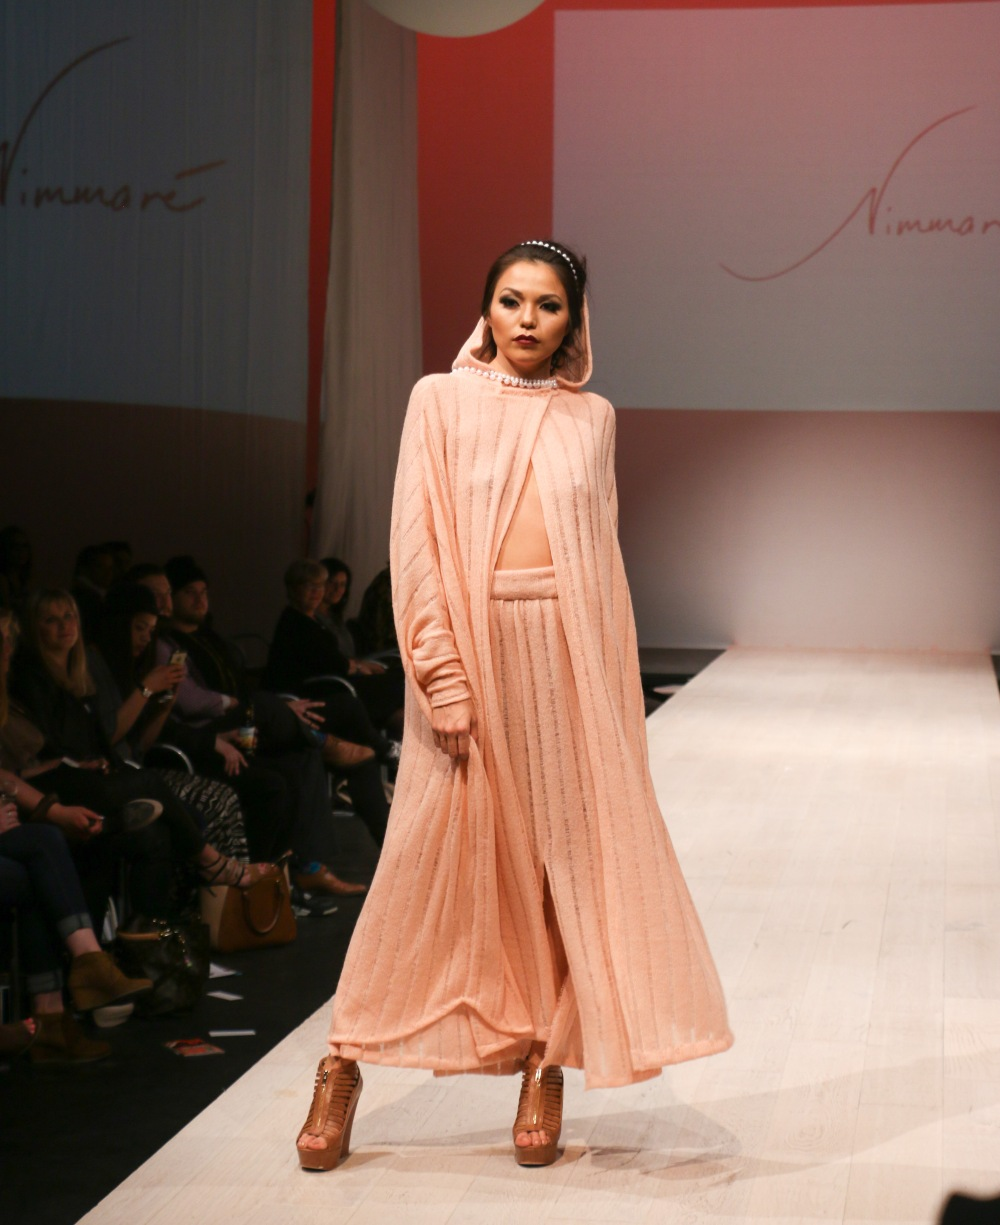 Western Canada Fashion Week in Edmonton on Tuesday, March 31, 2015. Nimmaré A/W 15 runway show. (Photo by Tina Amini)